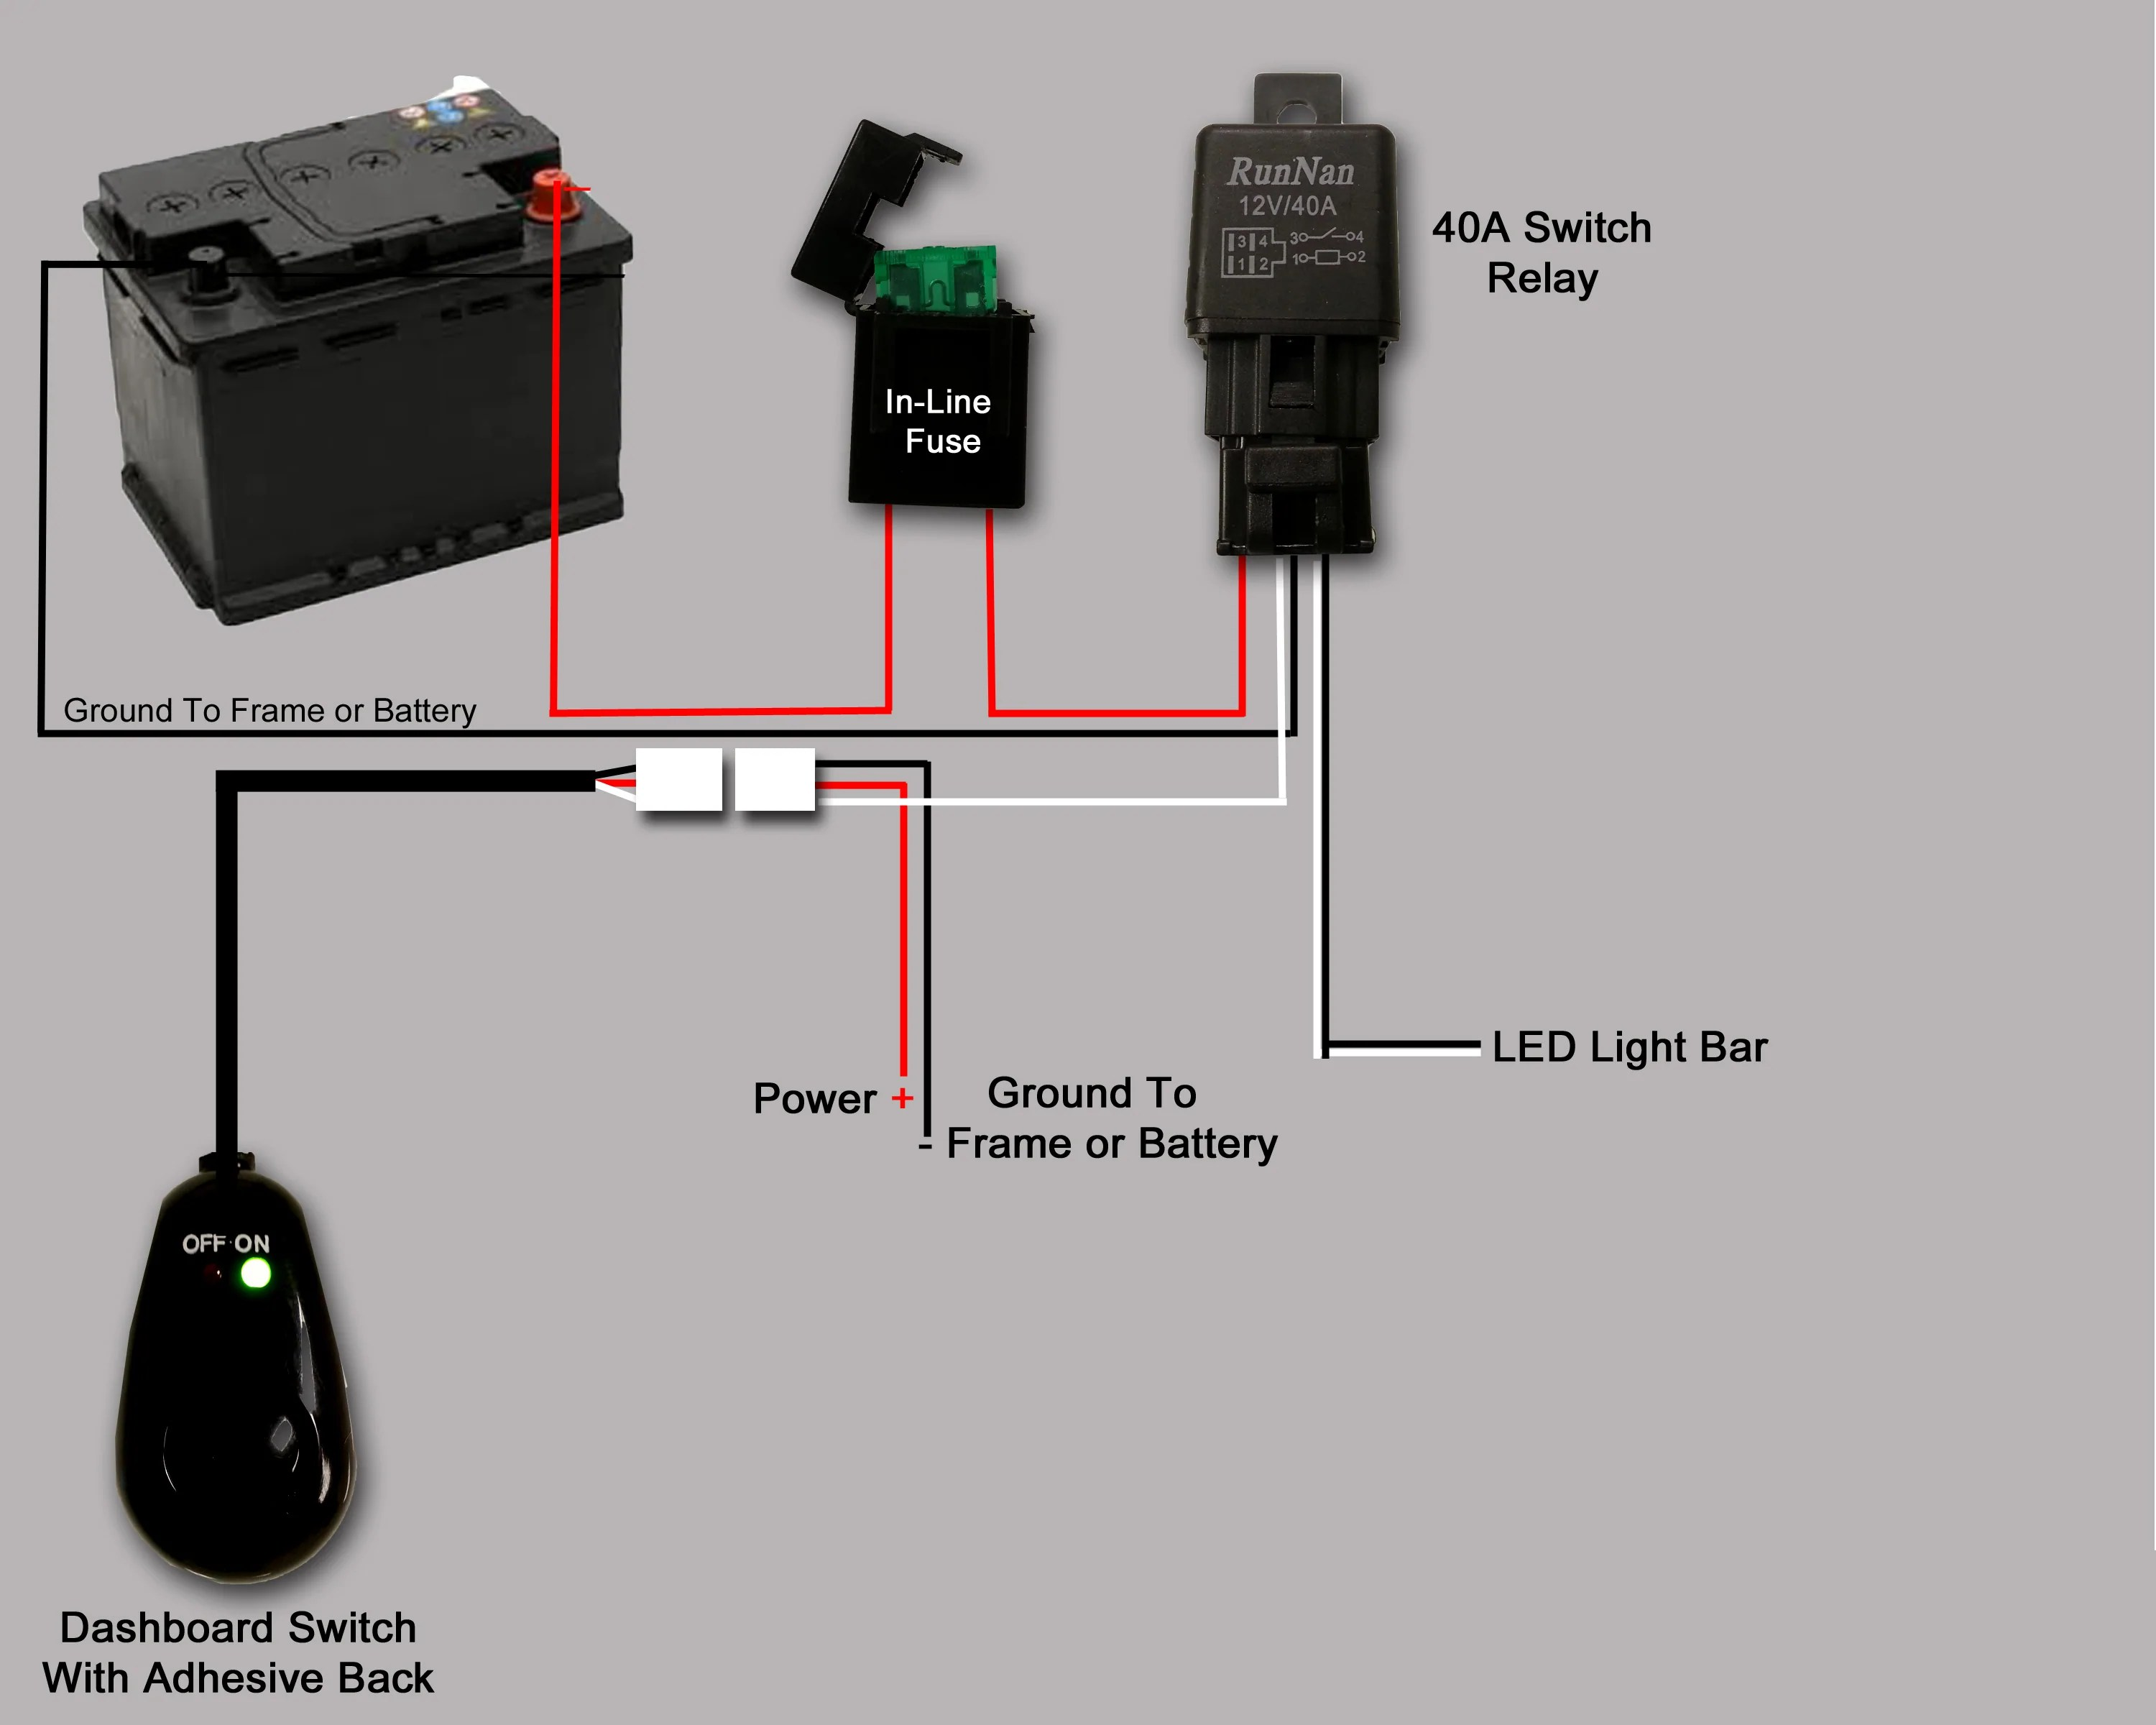 wiring diagram for light bar rocker switch 1995 ford explorer ignition led lightbar help a newbie patrol 4x4 nissan